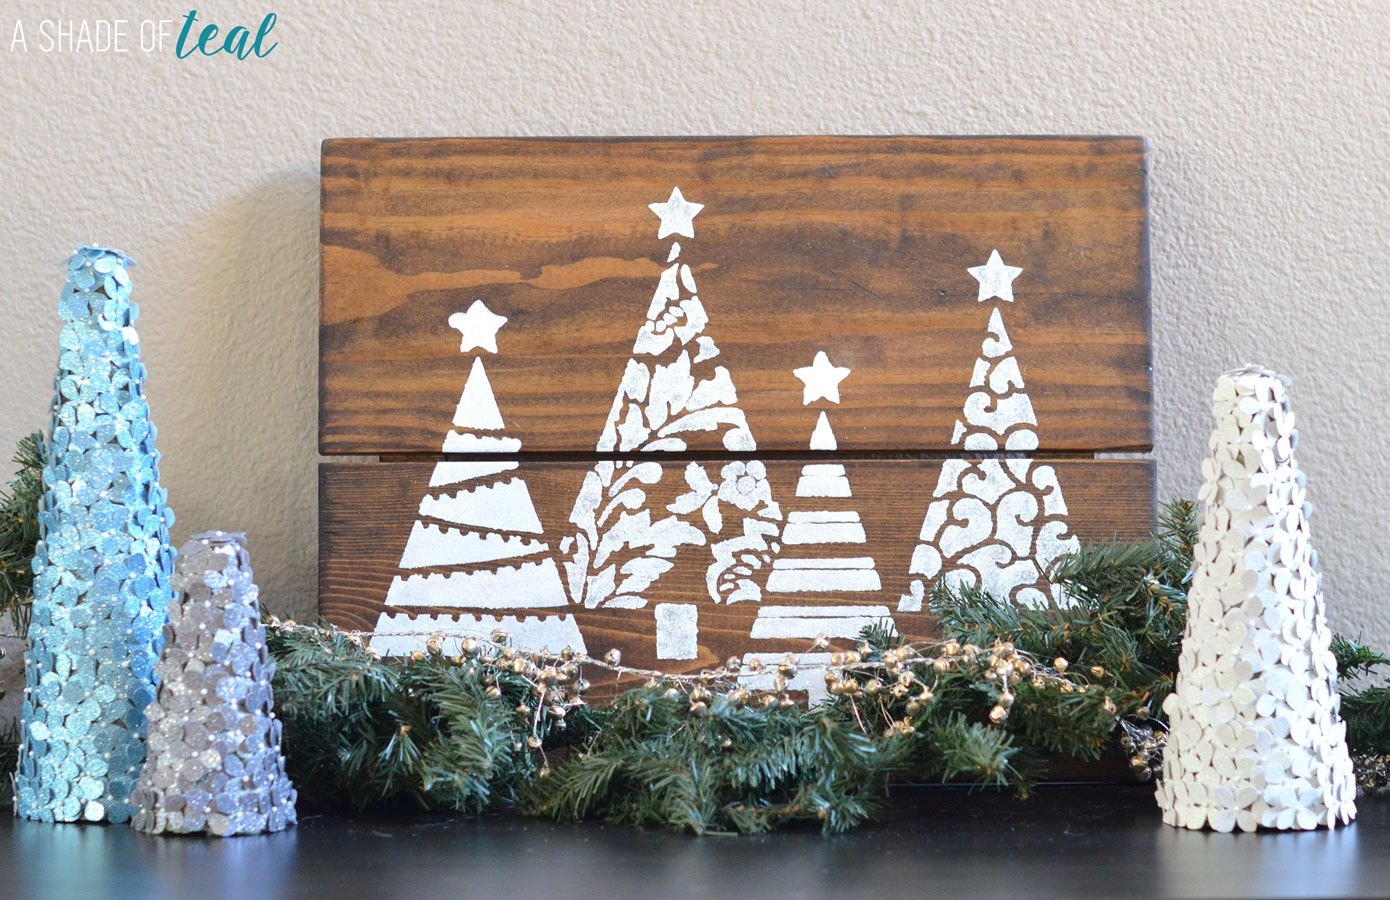 DIY farmhouse Christmas project stenciled Christmas trees on reclaimed wood with garland and glitter trees surrounding